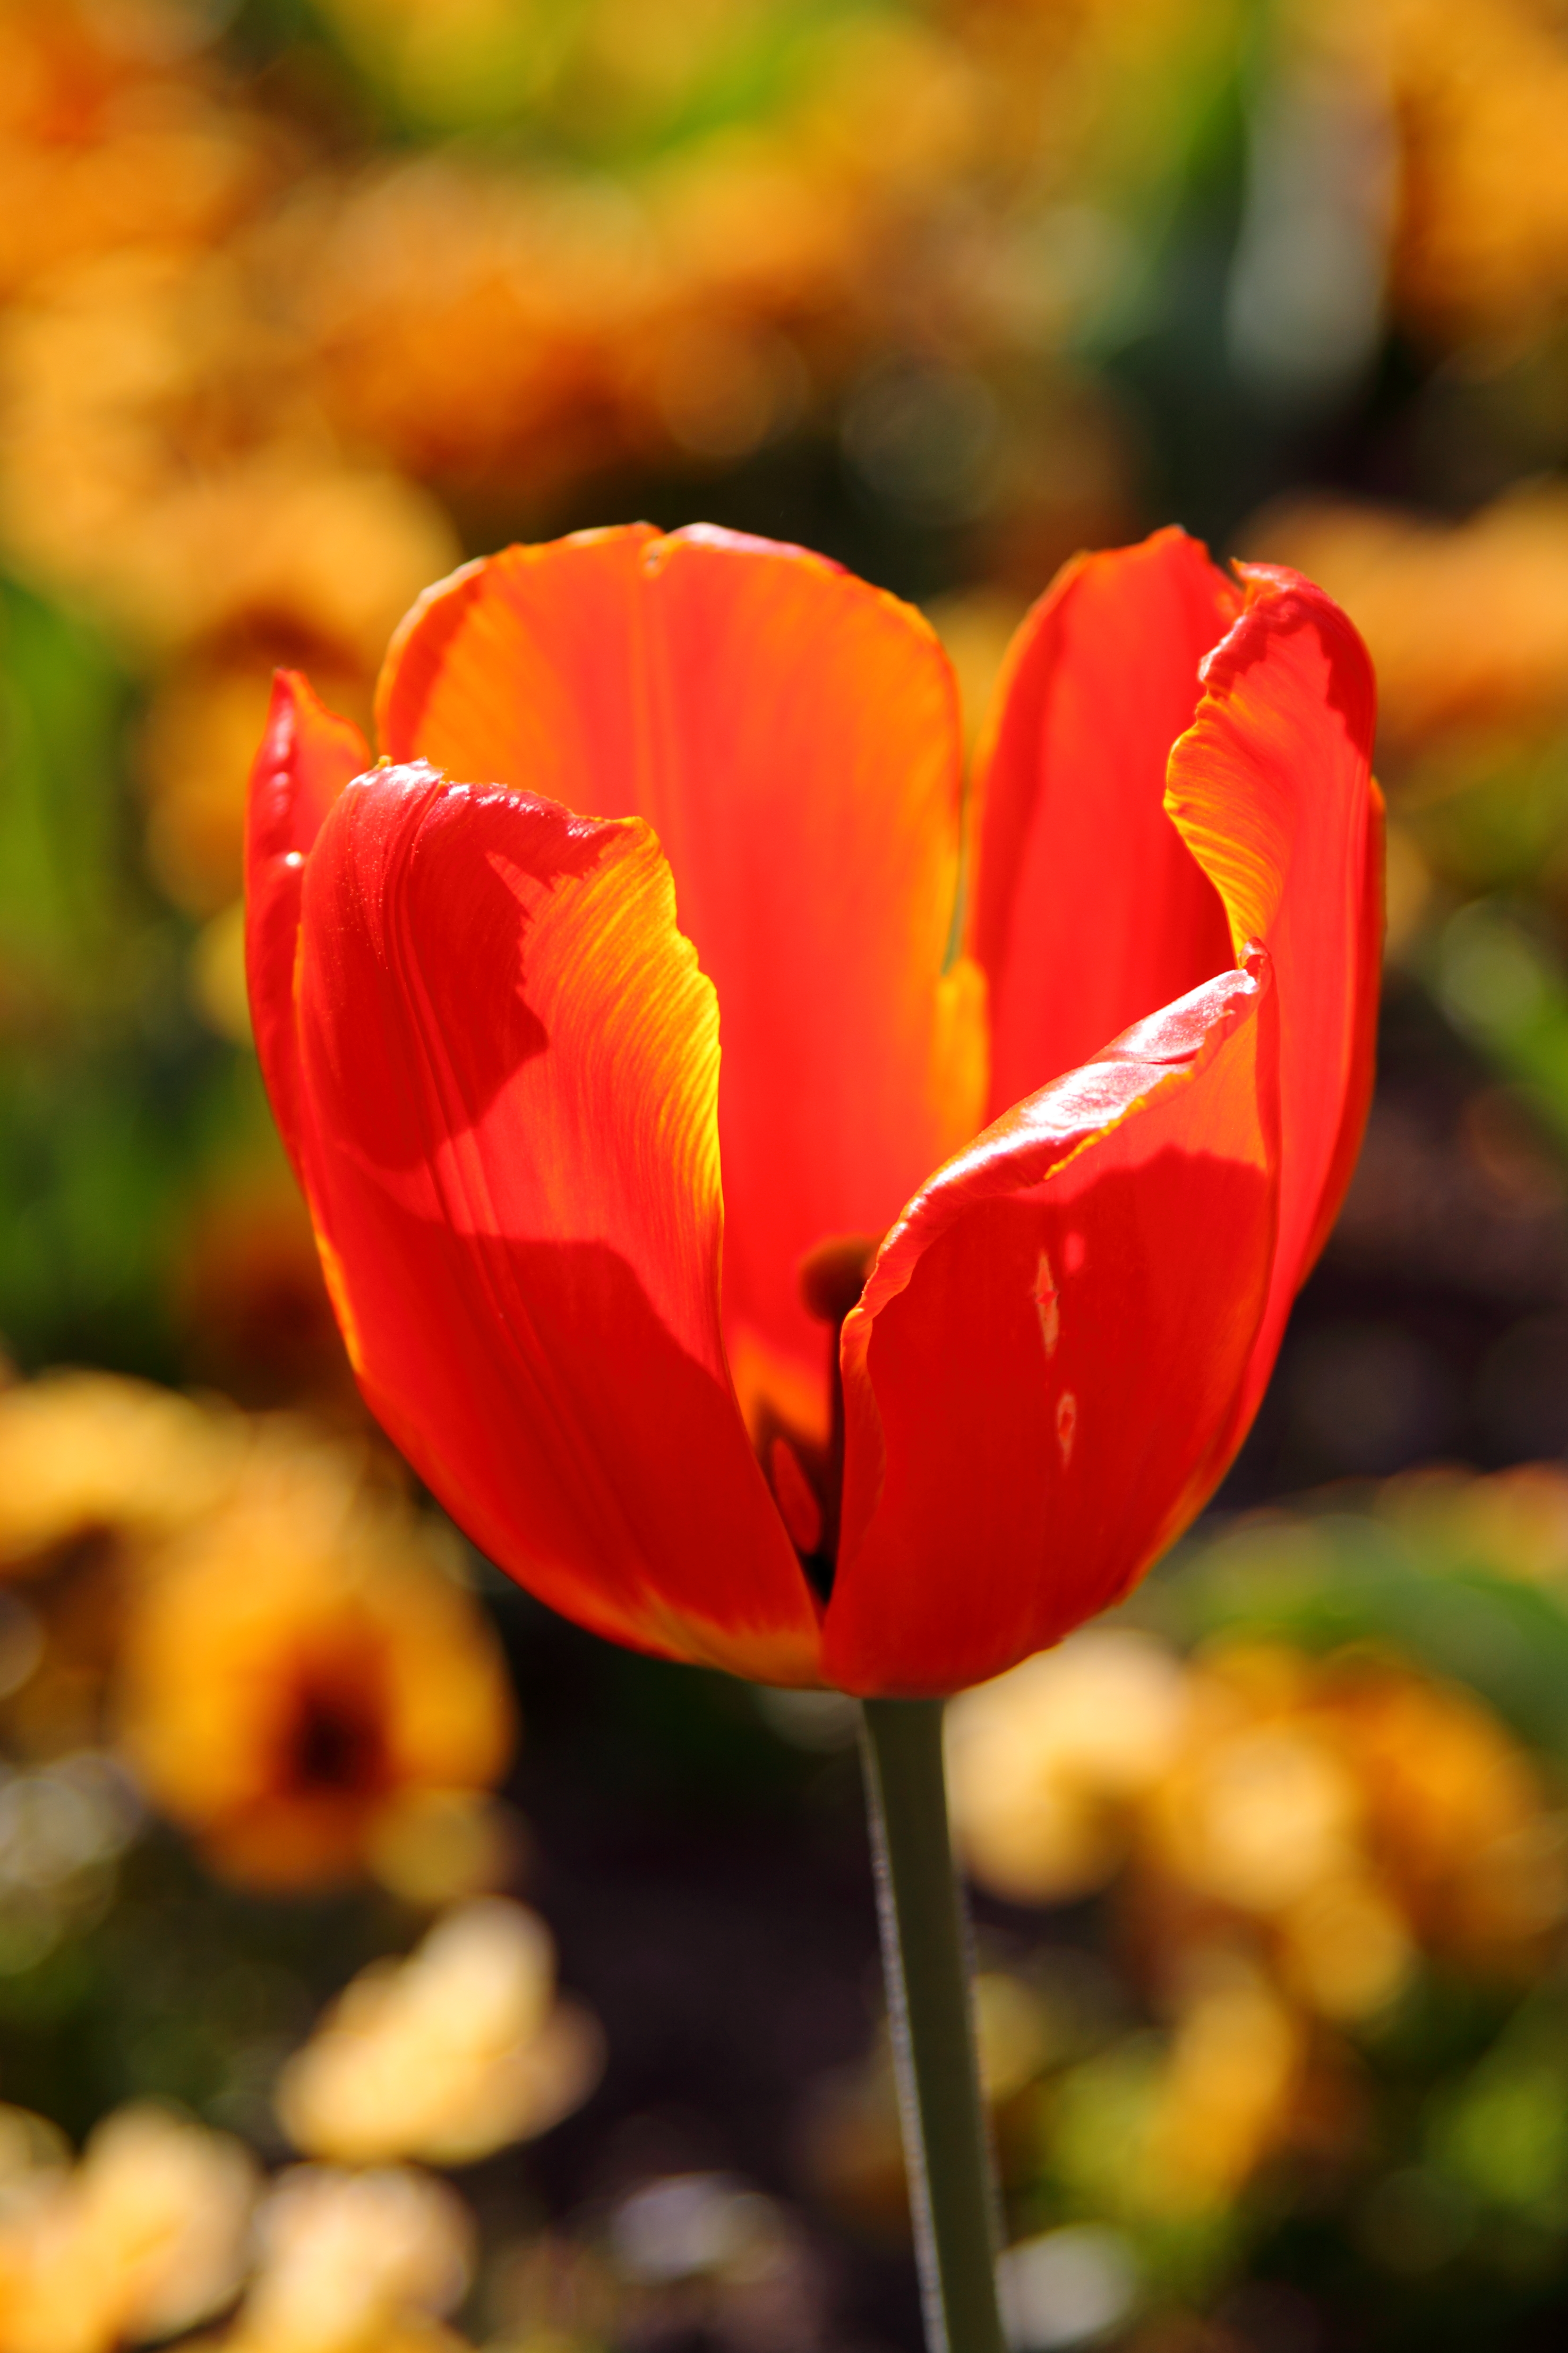 Rote tulpe picture